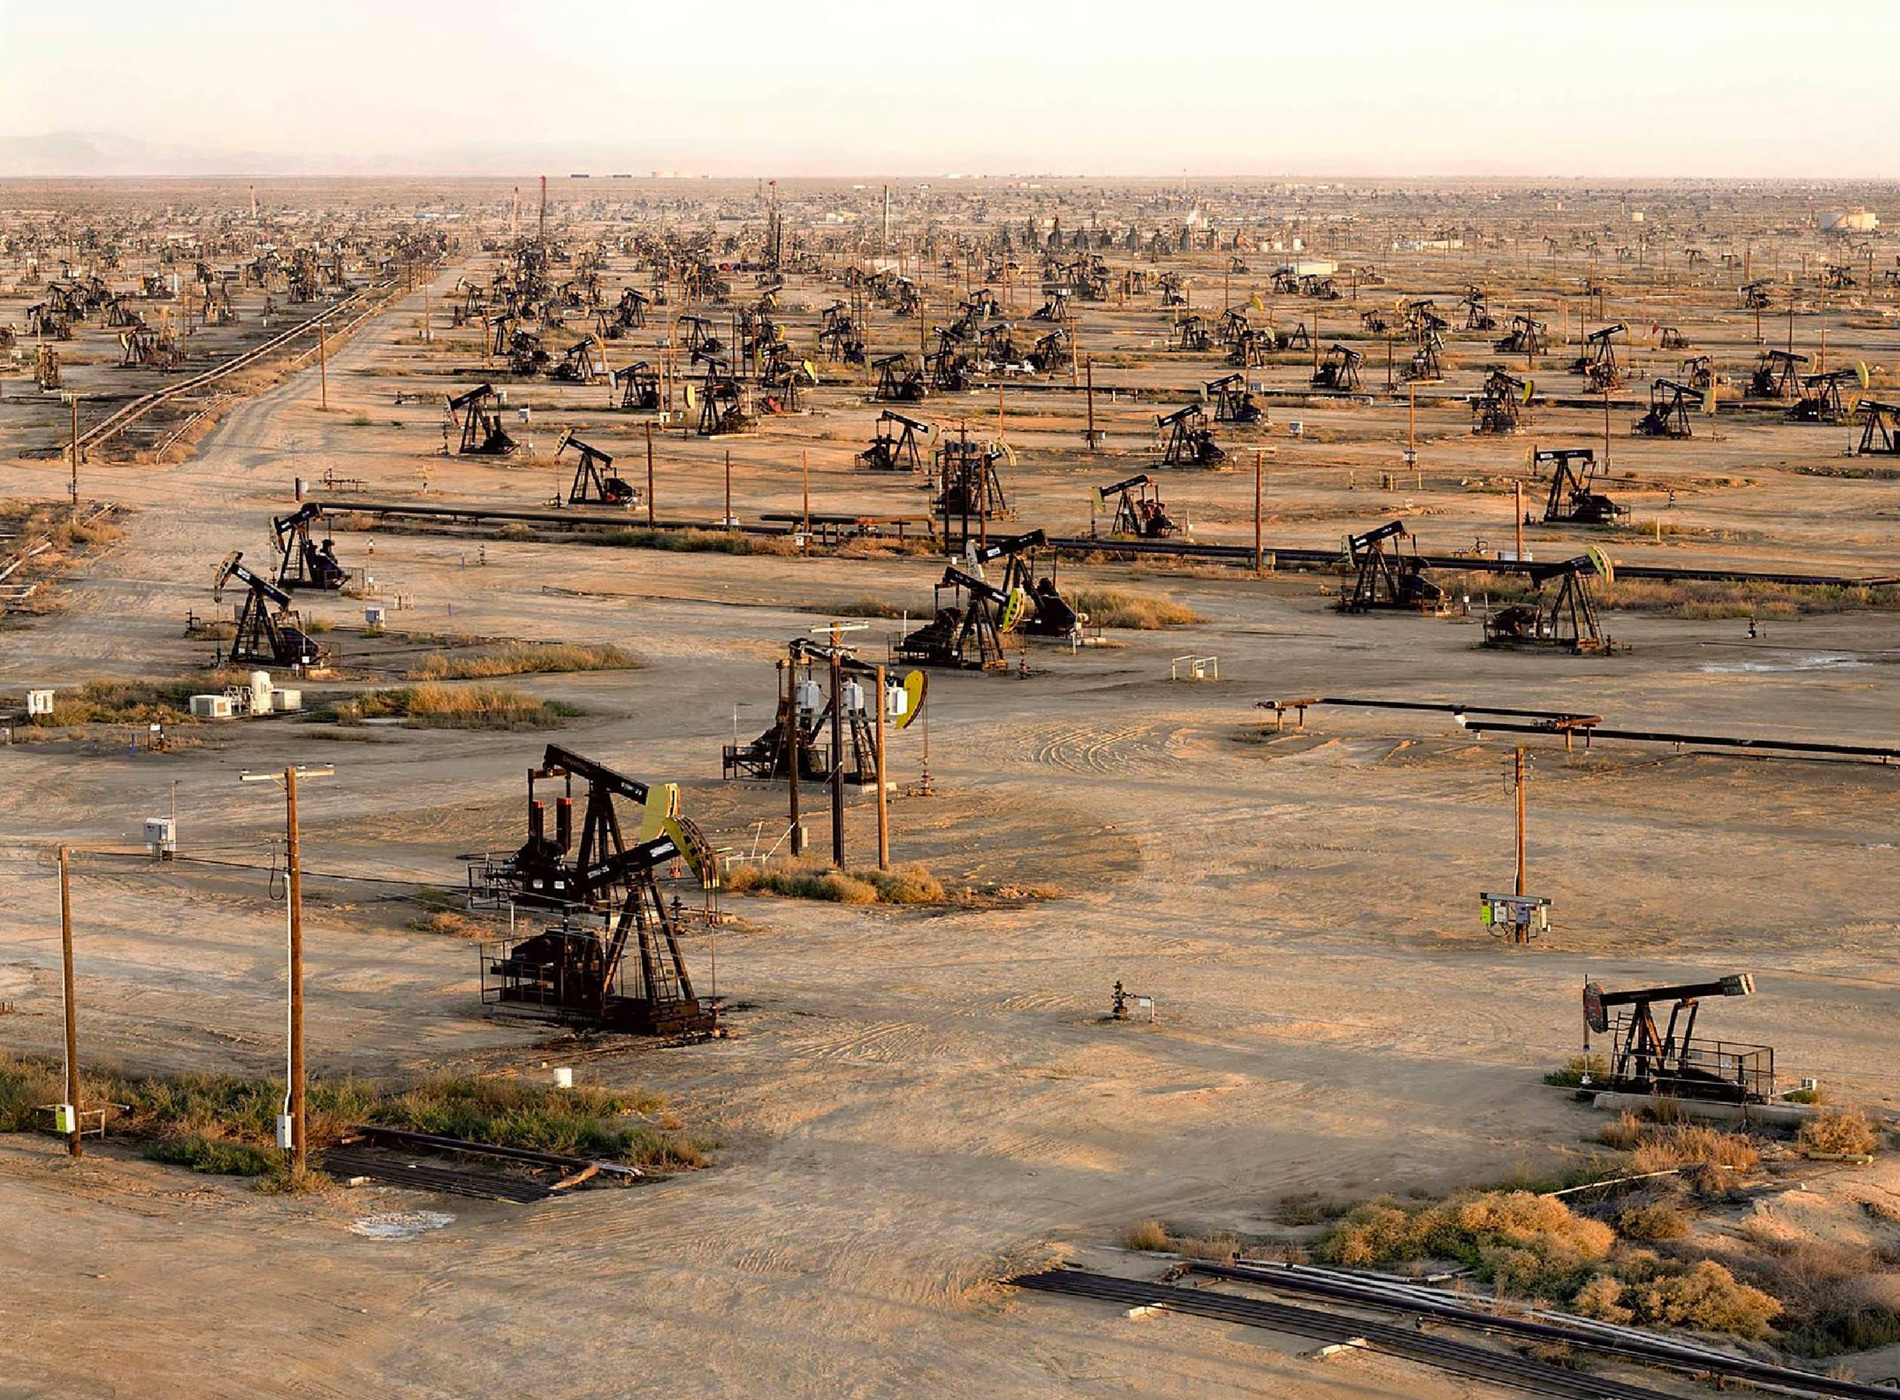 Edward Burtynski Photographie Oil Fields No19b Belridge Californie USA 2003